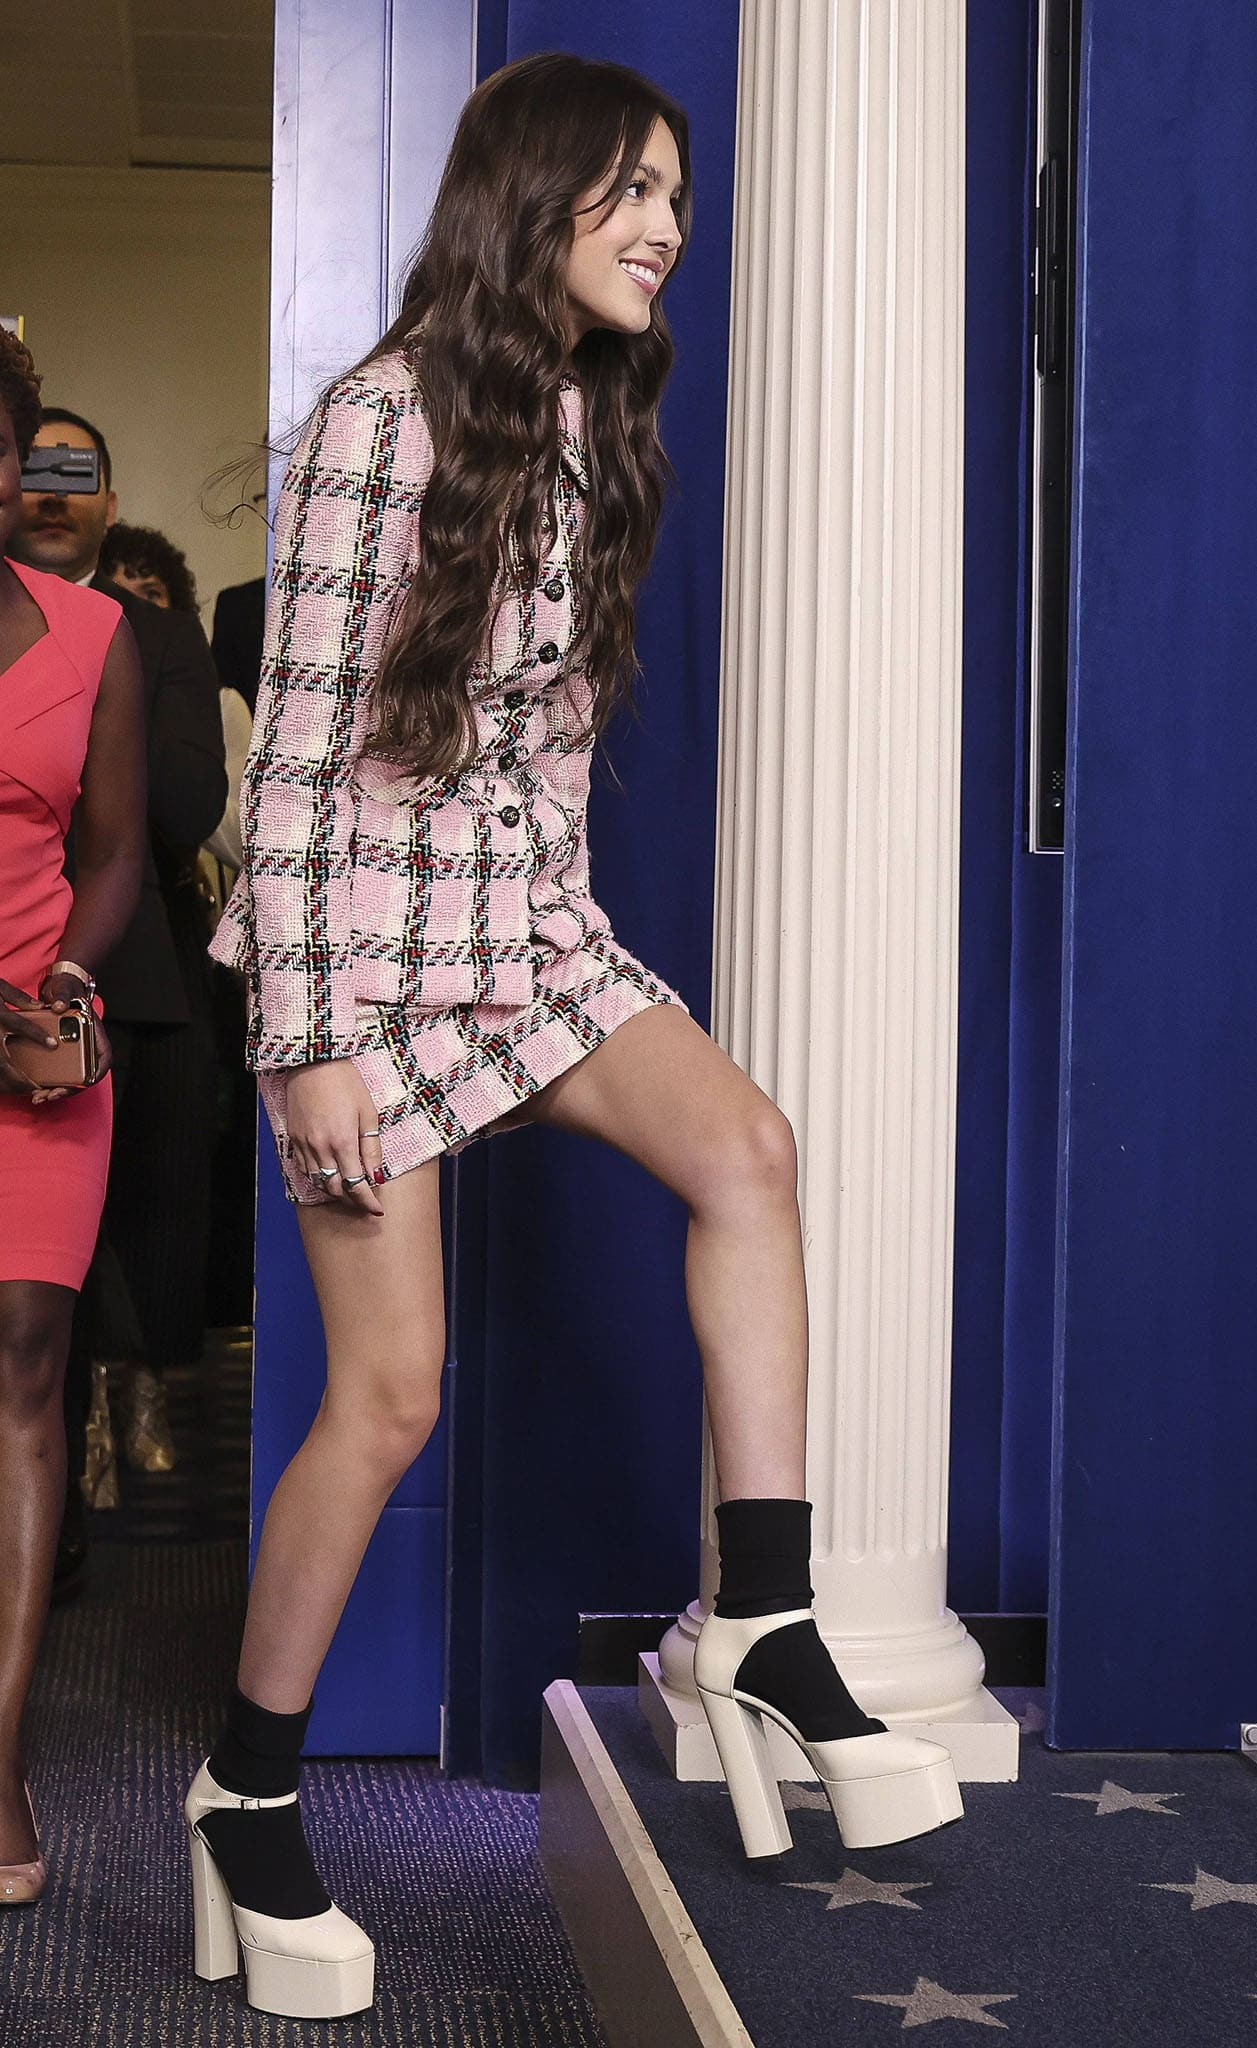 Olivia Rodrigo wears her signature vintage style with a pink plaid tweed set from Chanel